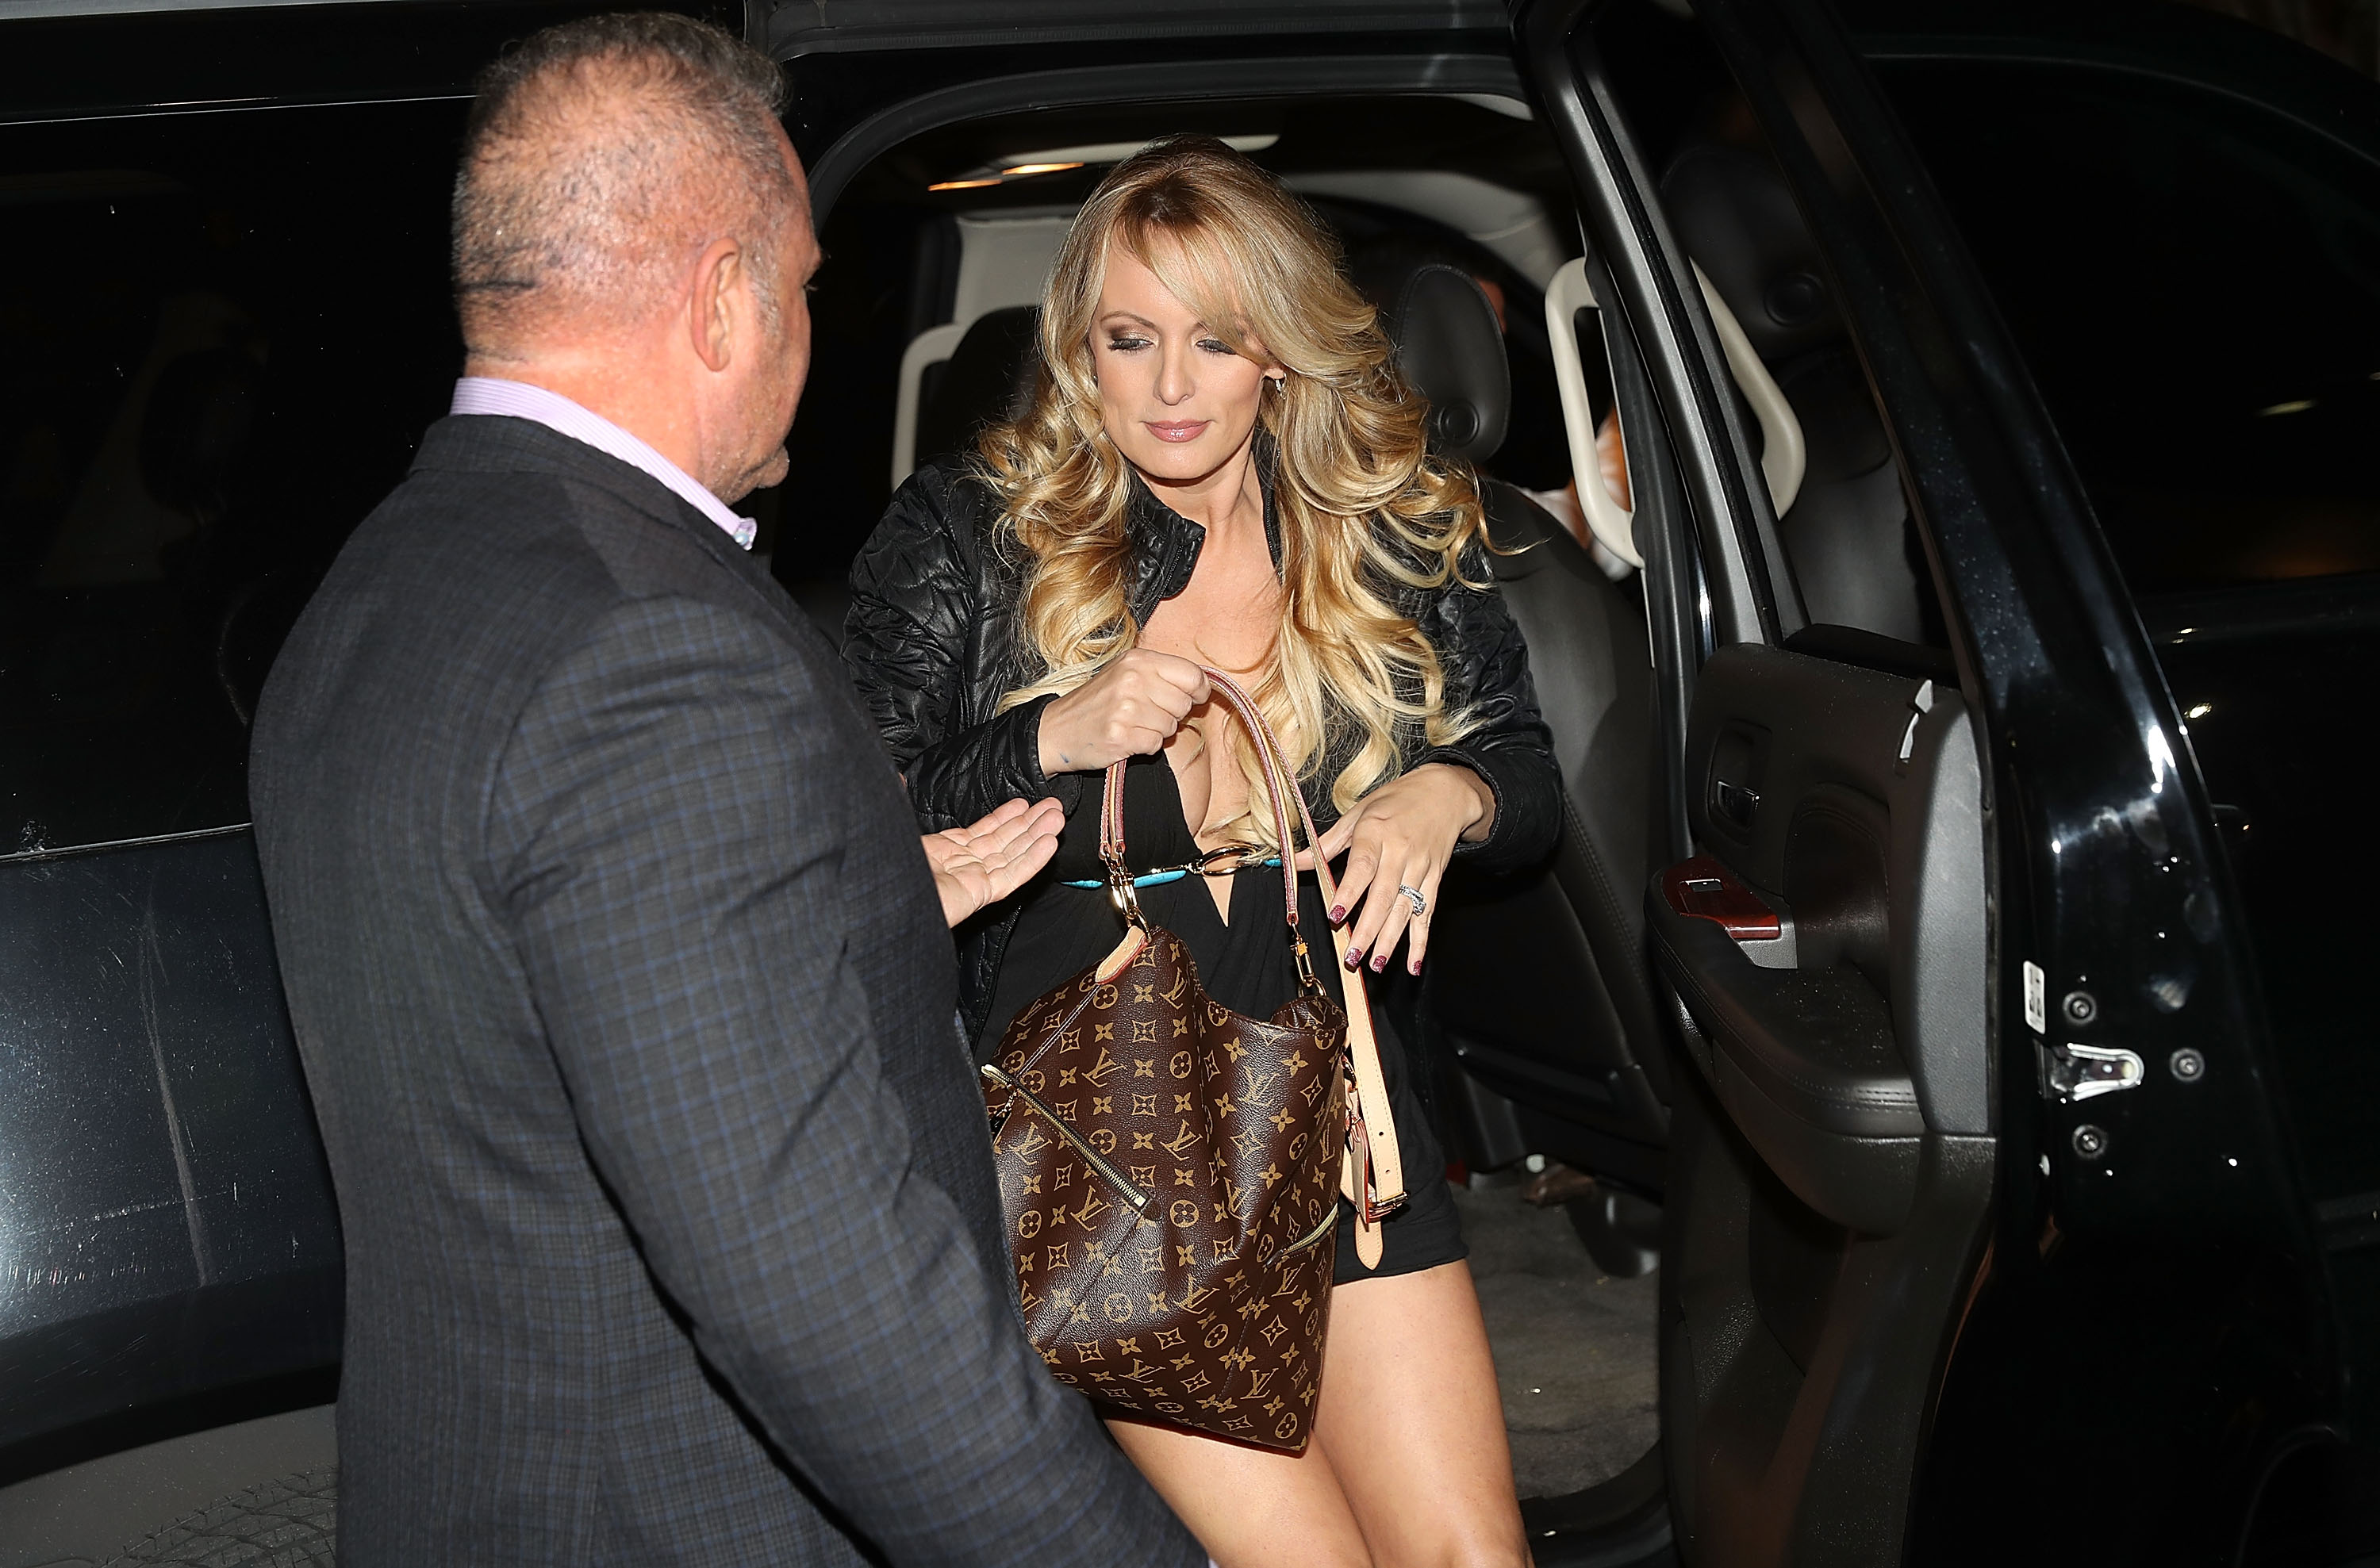 POMPANO BEACH, FL - MARCH 09: The actress Stephanie Clifford, who uses the stage name Stormy Daniels, arrives to perform at the Solid Gold Fort Lauderdale strip club on March 9, 2018 in Pompano Beach, Florida. Stephanie Clifford who claims to have had an affair with President Trump has filed a suit against him in an attempt to nullify a nondisclosure deal with Trump attorney Michael Cohen days before Trump's 2016 presidential victory. (Photo by Joe Raedle/Getty Images)